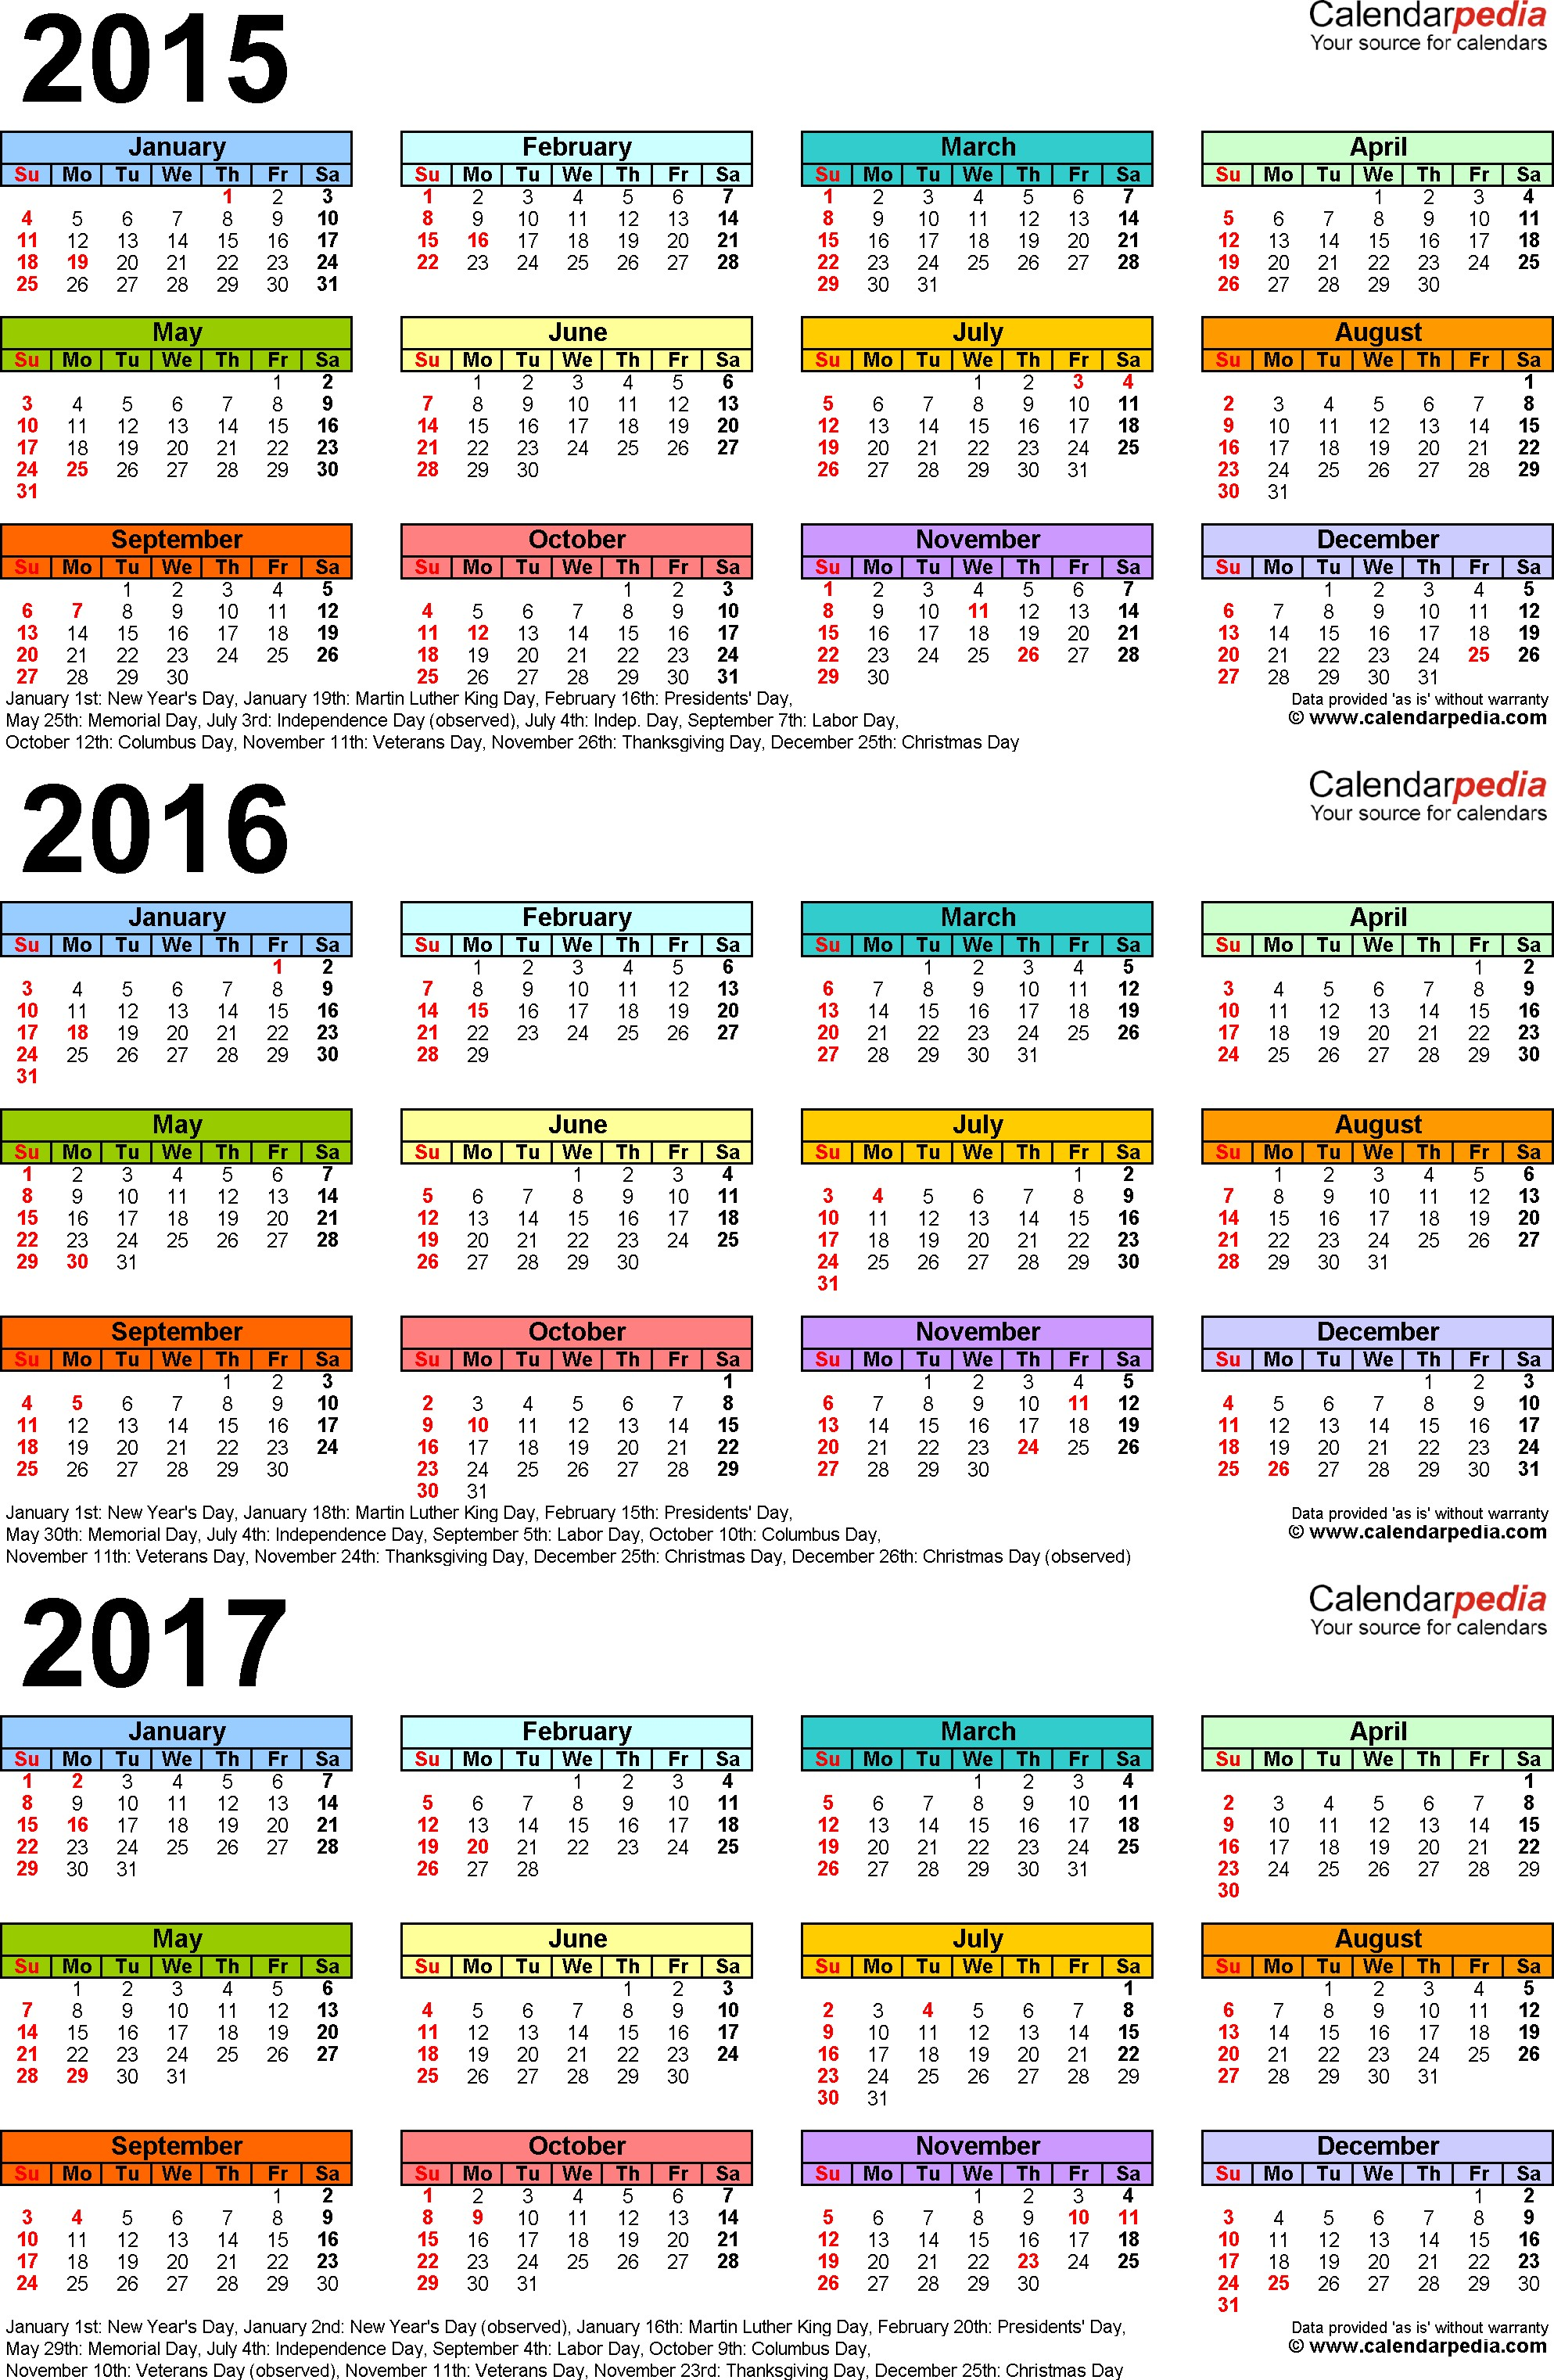 March Calendar Starting Monday Recientes 2015 2016 2017 Calendar 4 Three Year Printable Pdf Calendars Of March Calendar Starting Monday Más Caliente Calendar January 2018